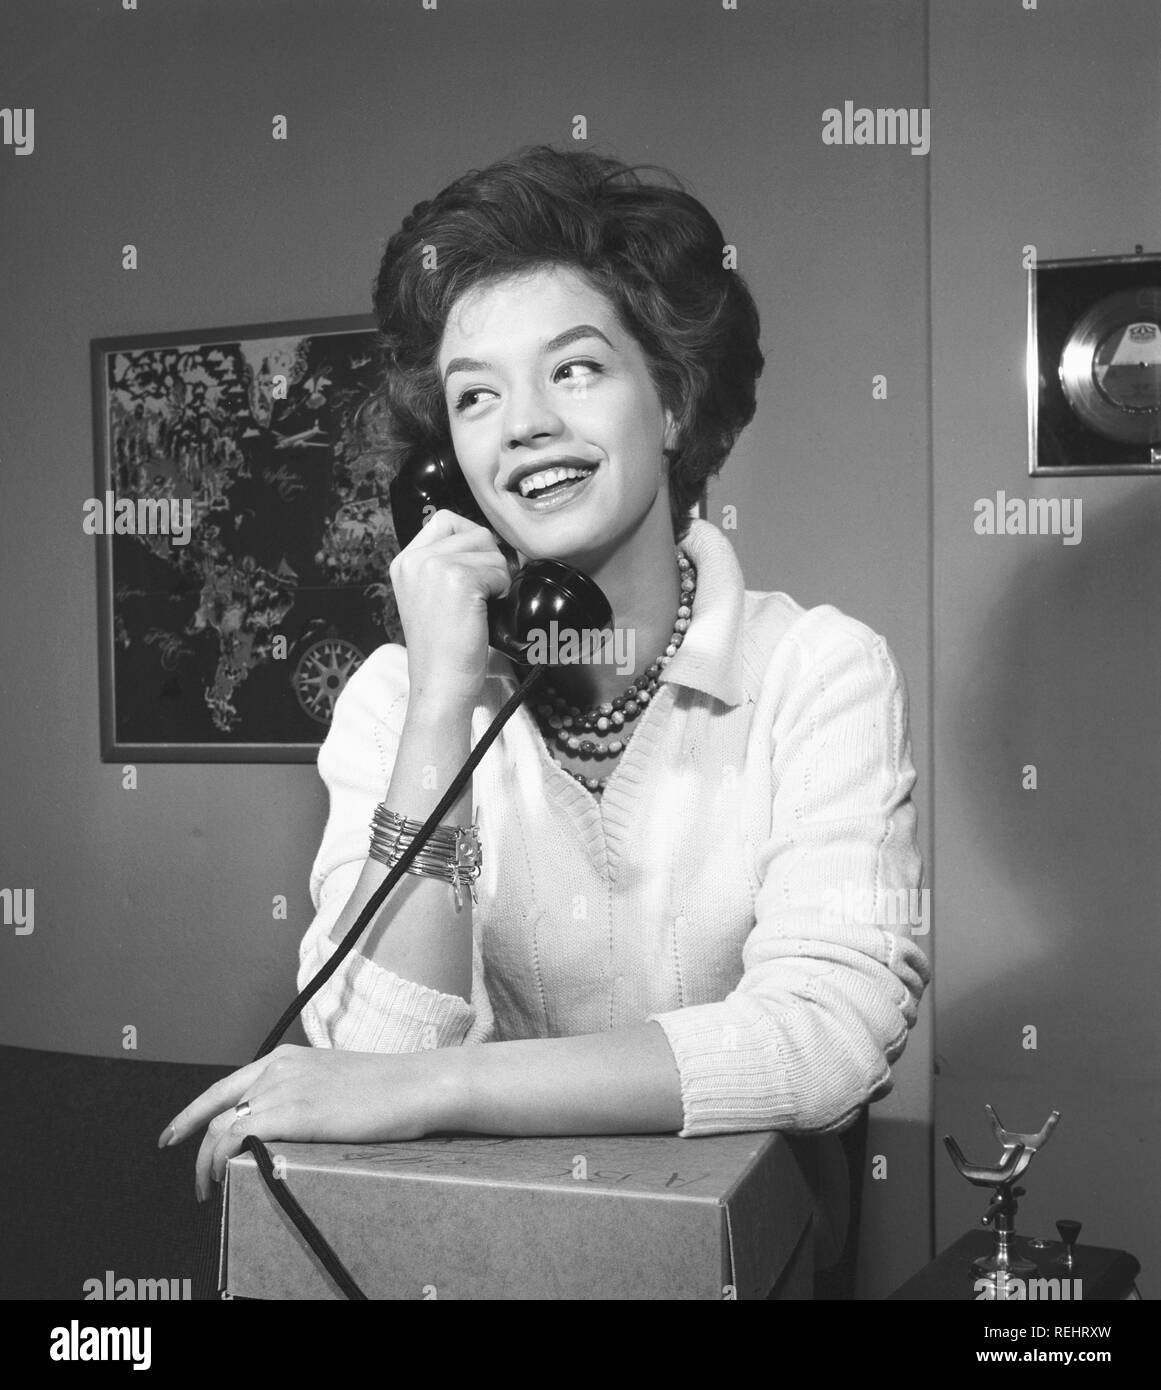 Woman in the 1950s  A young dark-haired woman speaking on